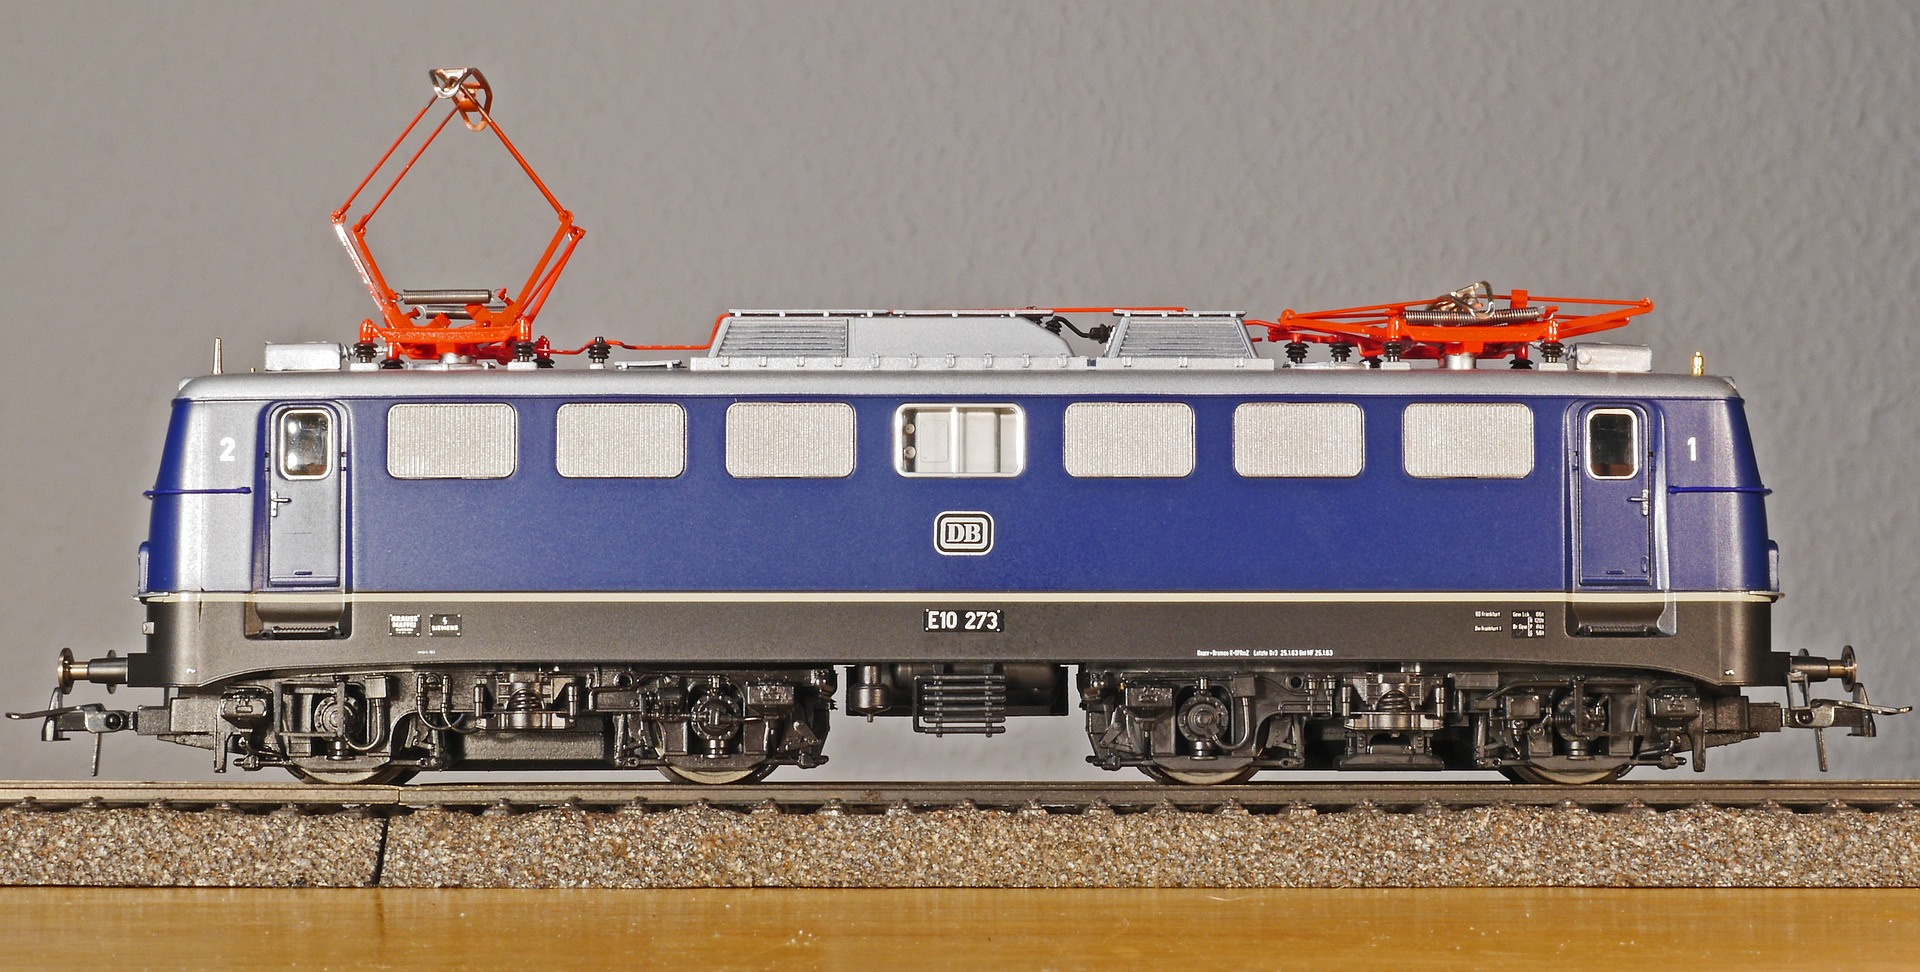 Lionel Train collections